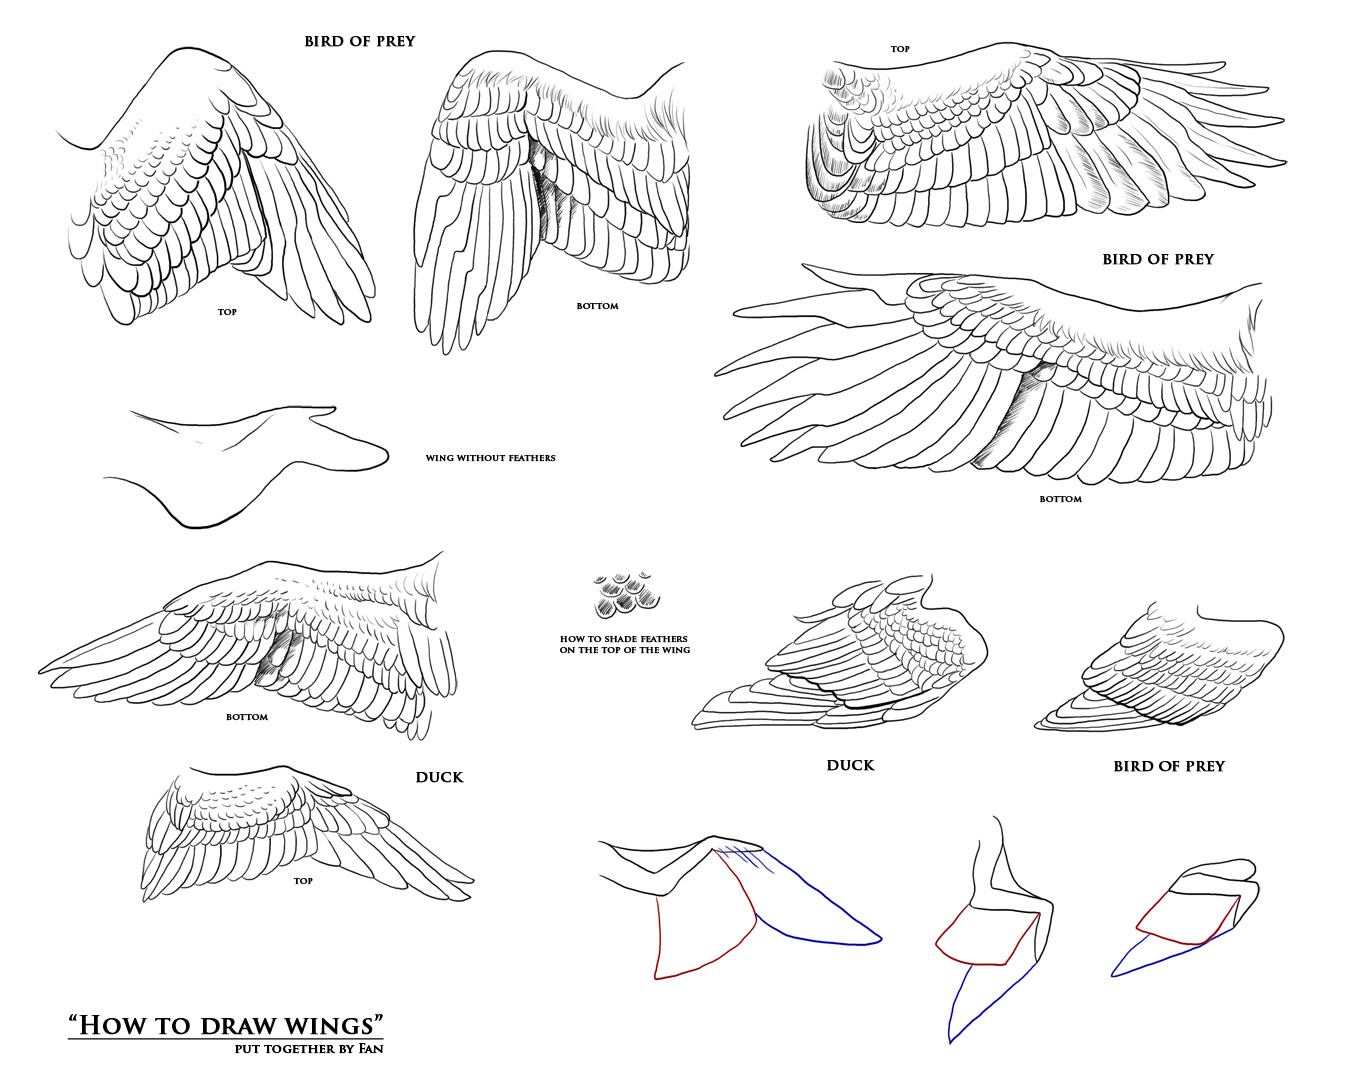 How to draw wings - resources